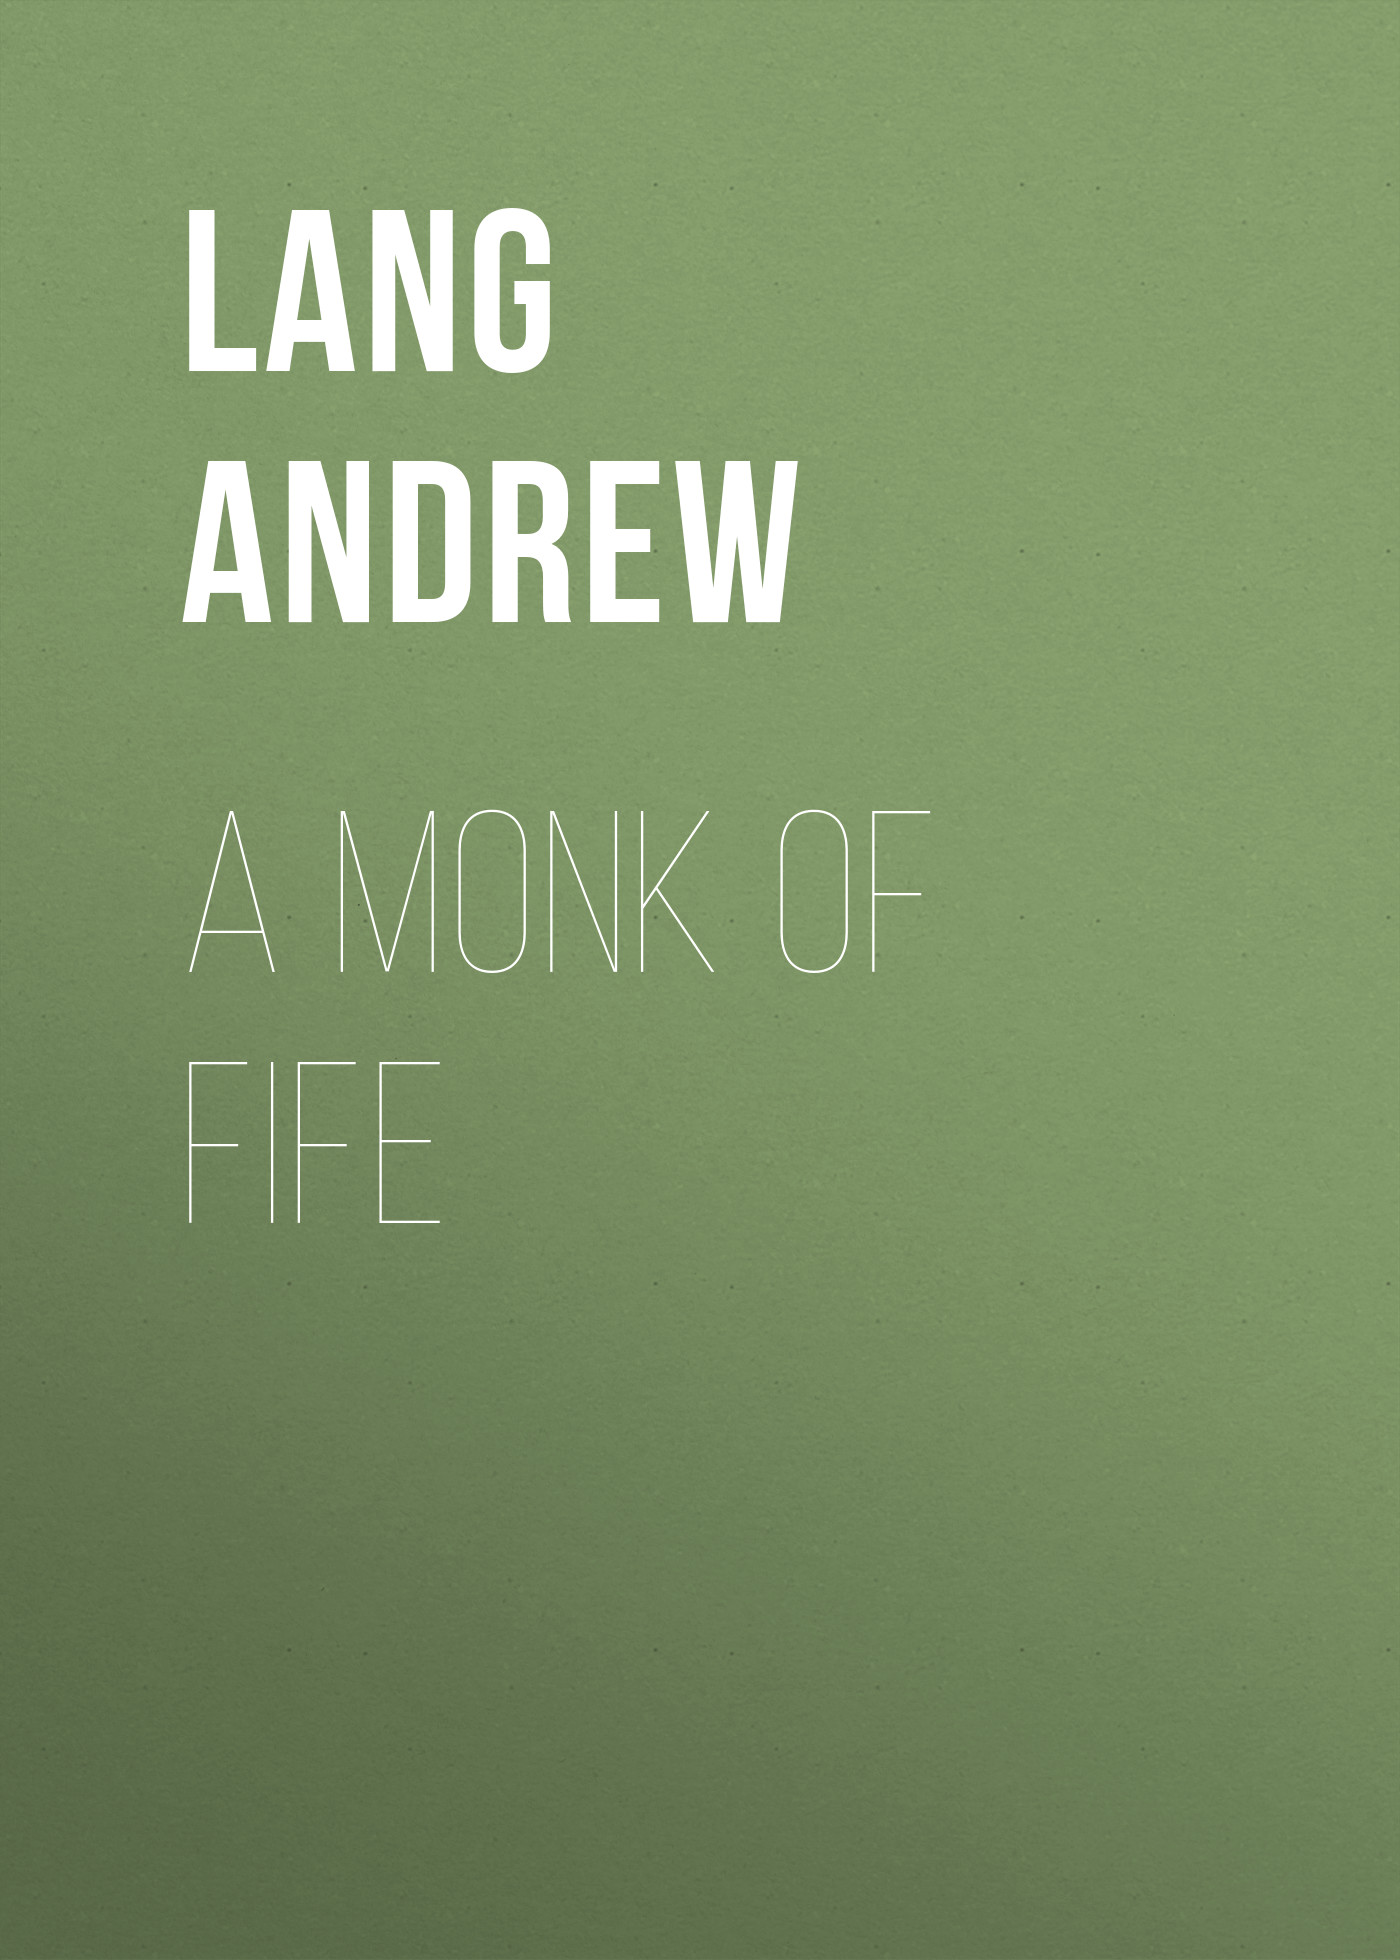 Lang Andrew A Monk of Fife